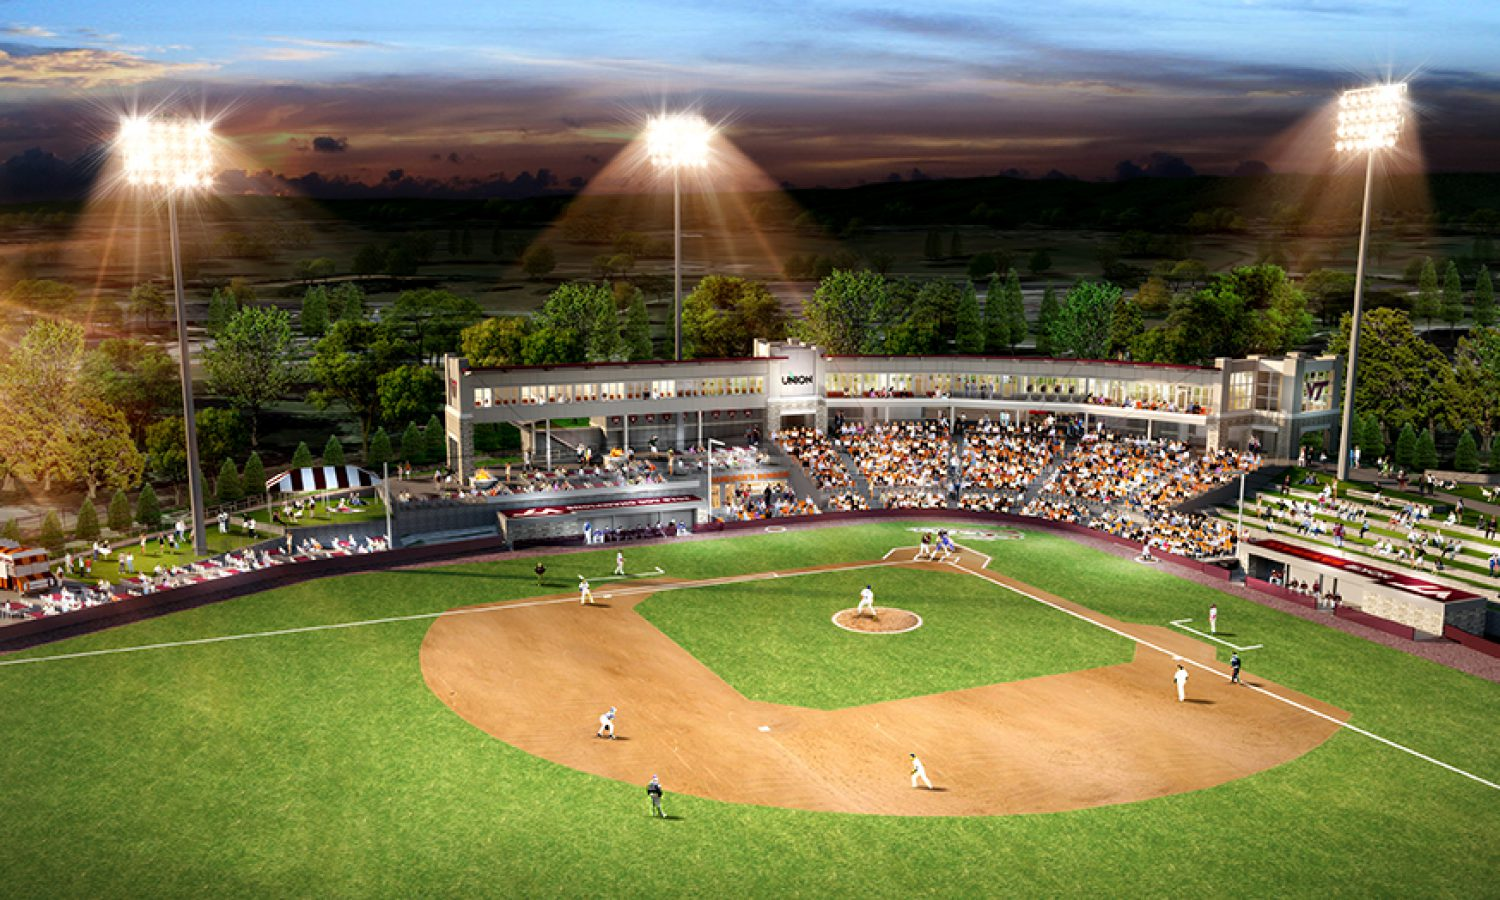 Virginia Tech – Baseball Stadium Design Build Competition